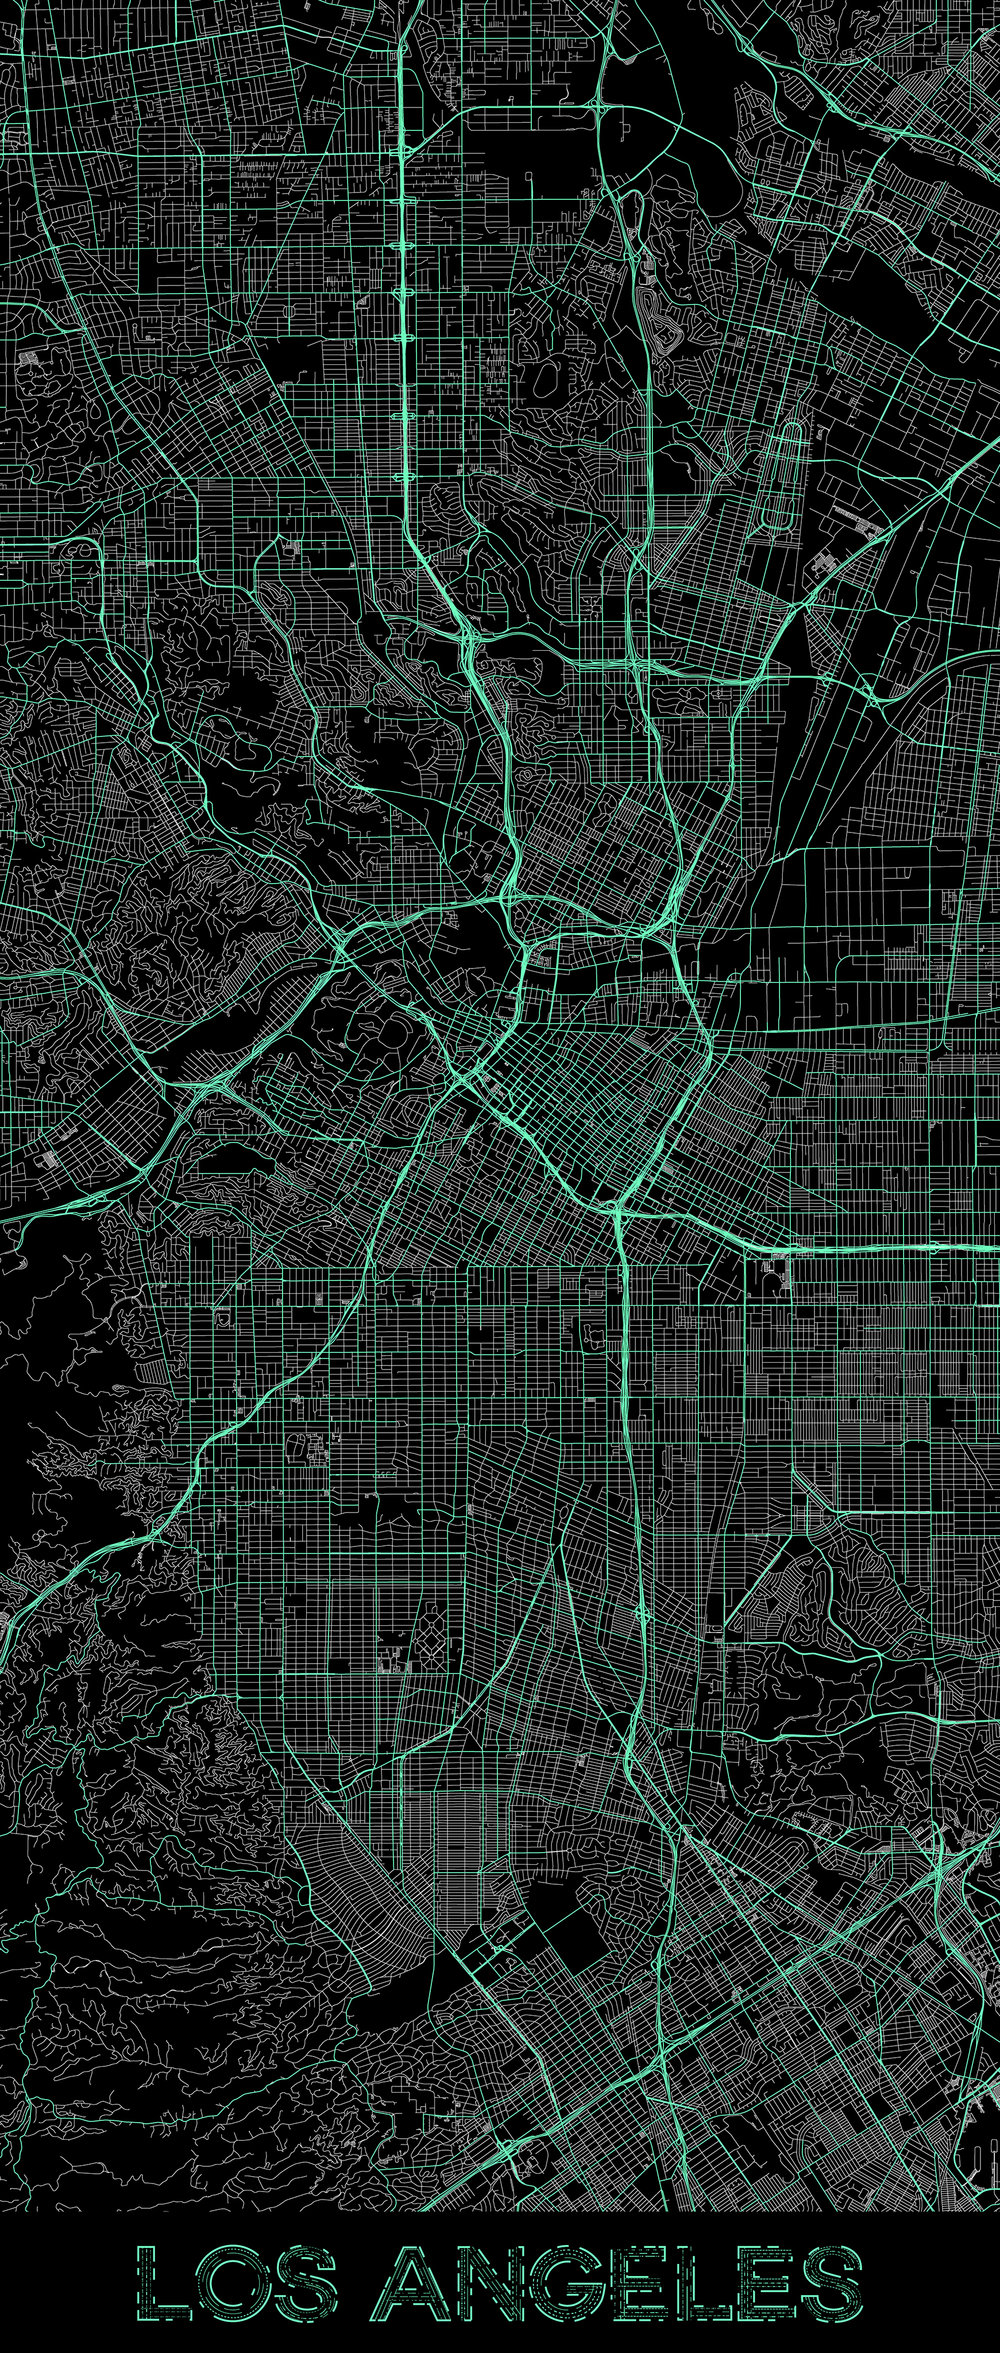 City map illustration of Los Angeles created using Maperitive, OpenStreetMap and Adobe Illustrator.